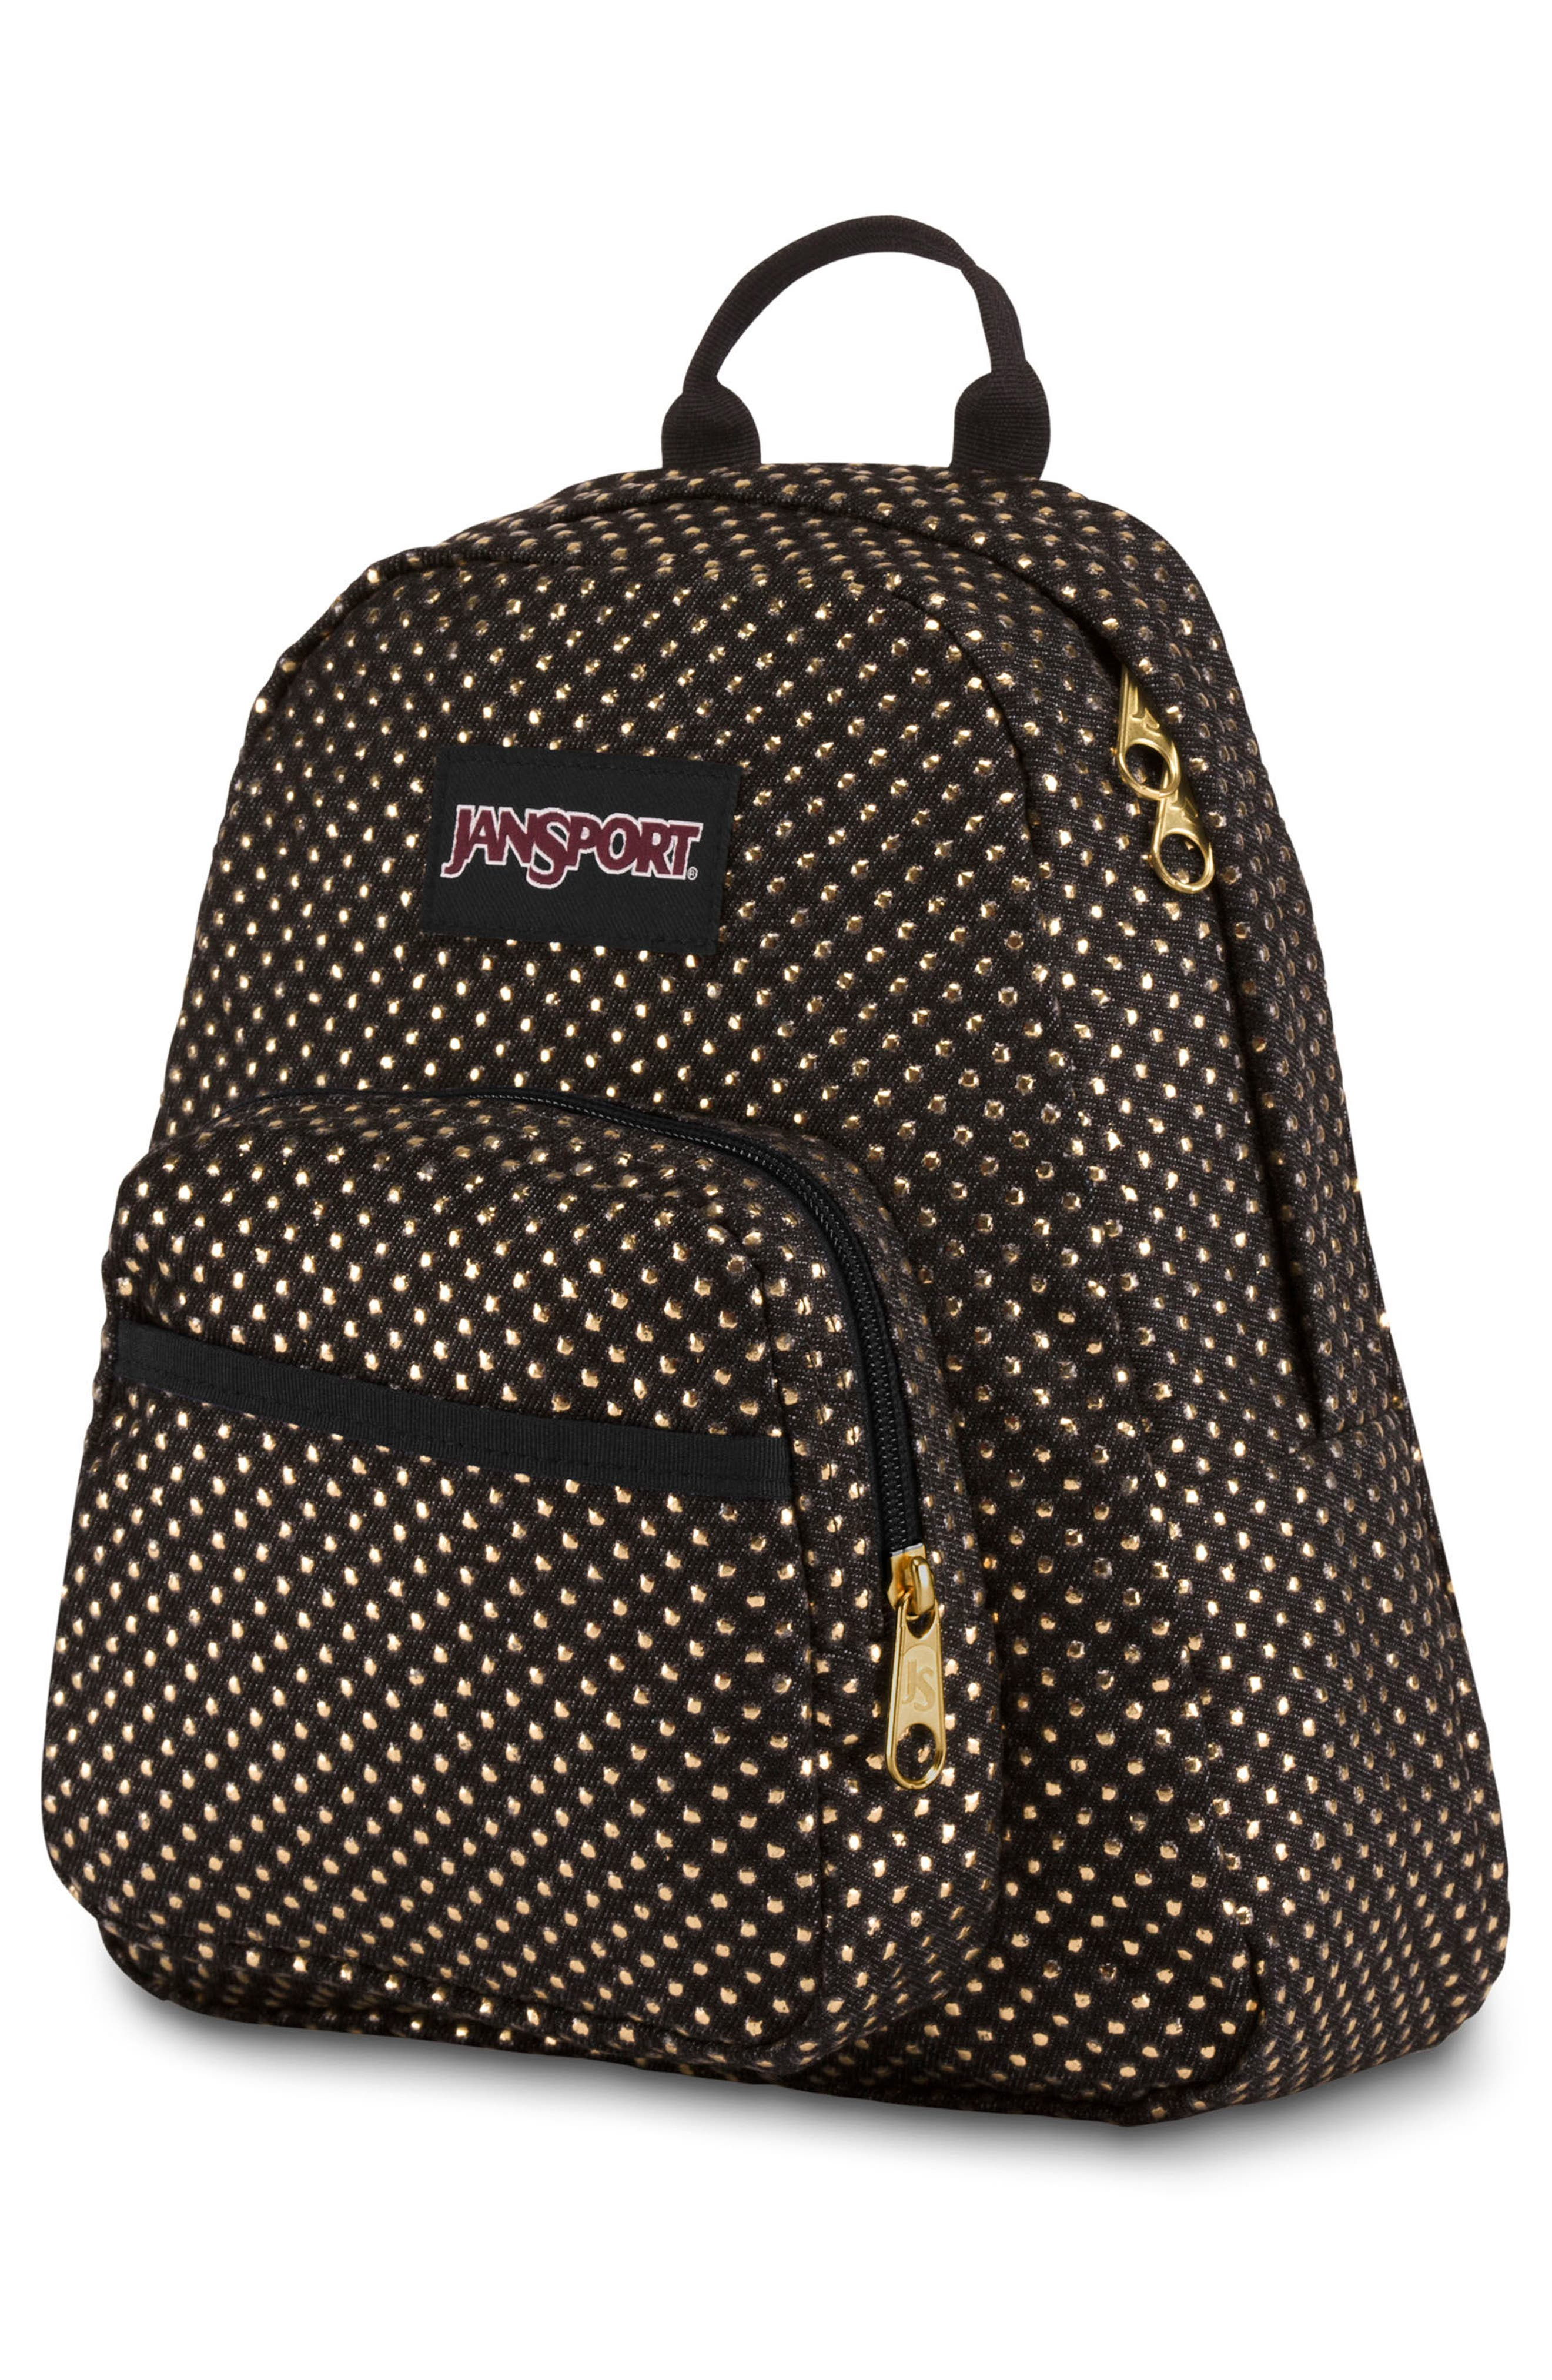 Half Pint Backpack,                             Alternate thumbnail 14, color,